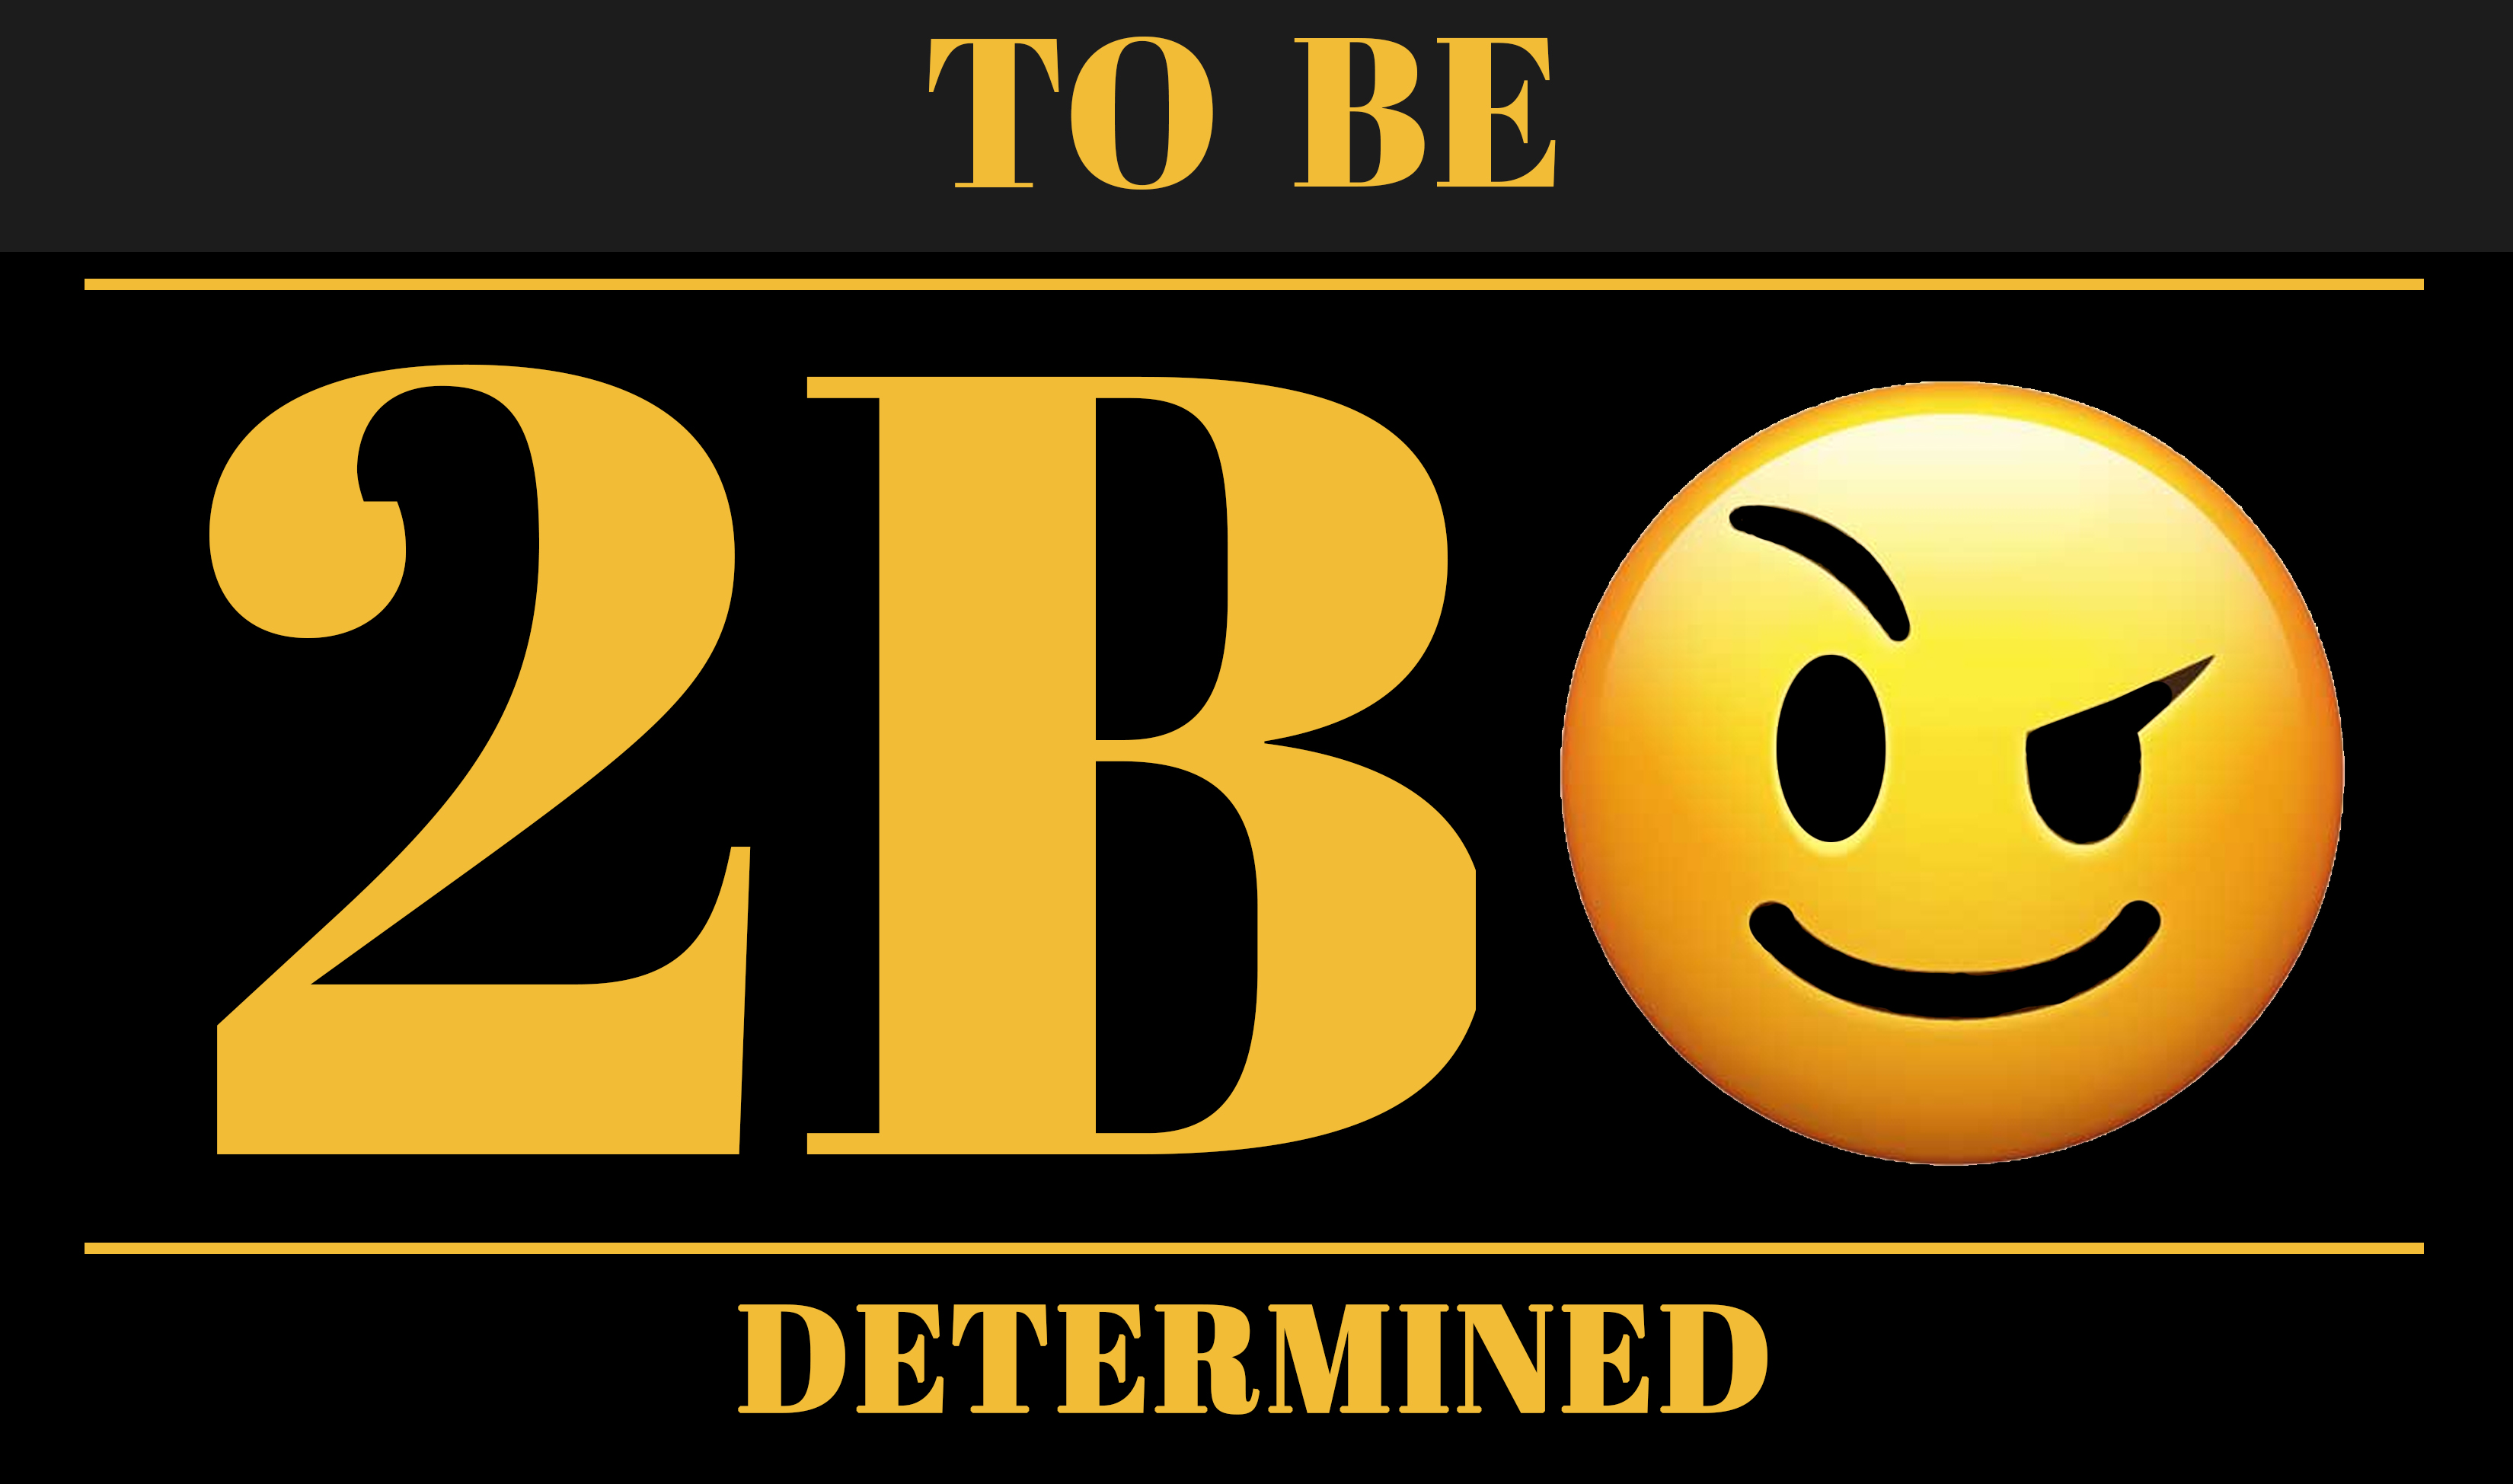 to be determined logo